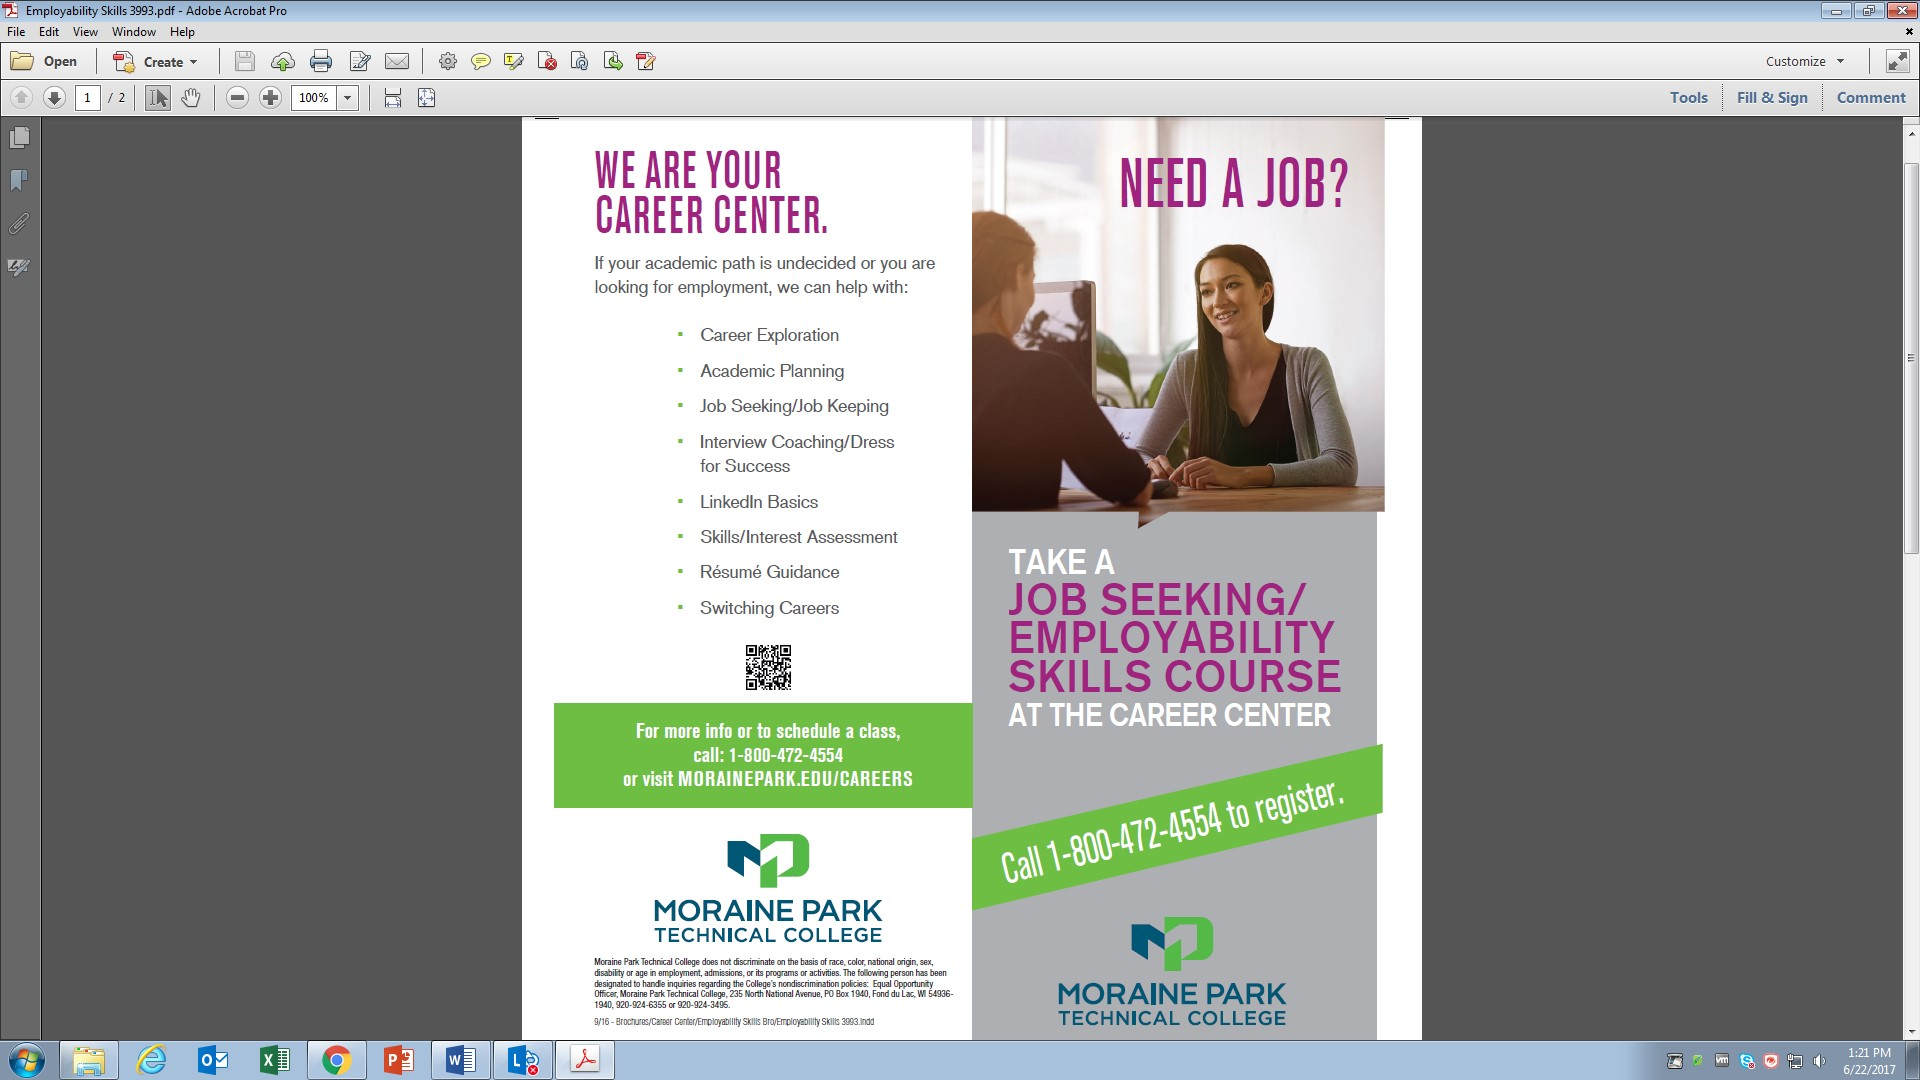 View Employment Skills Brochure